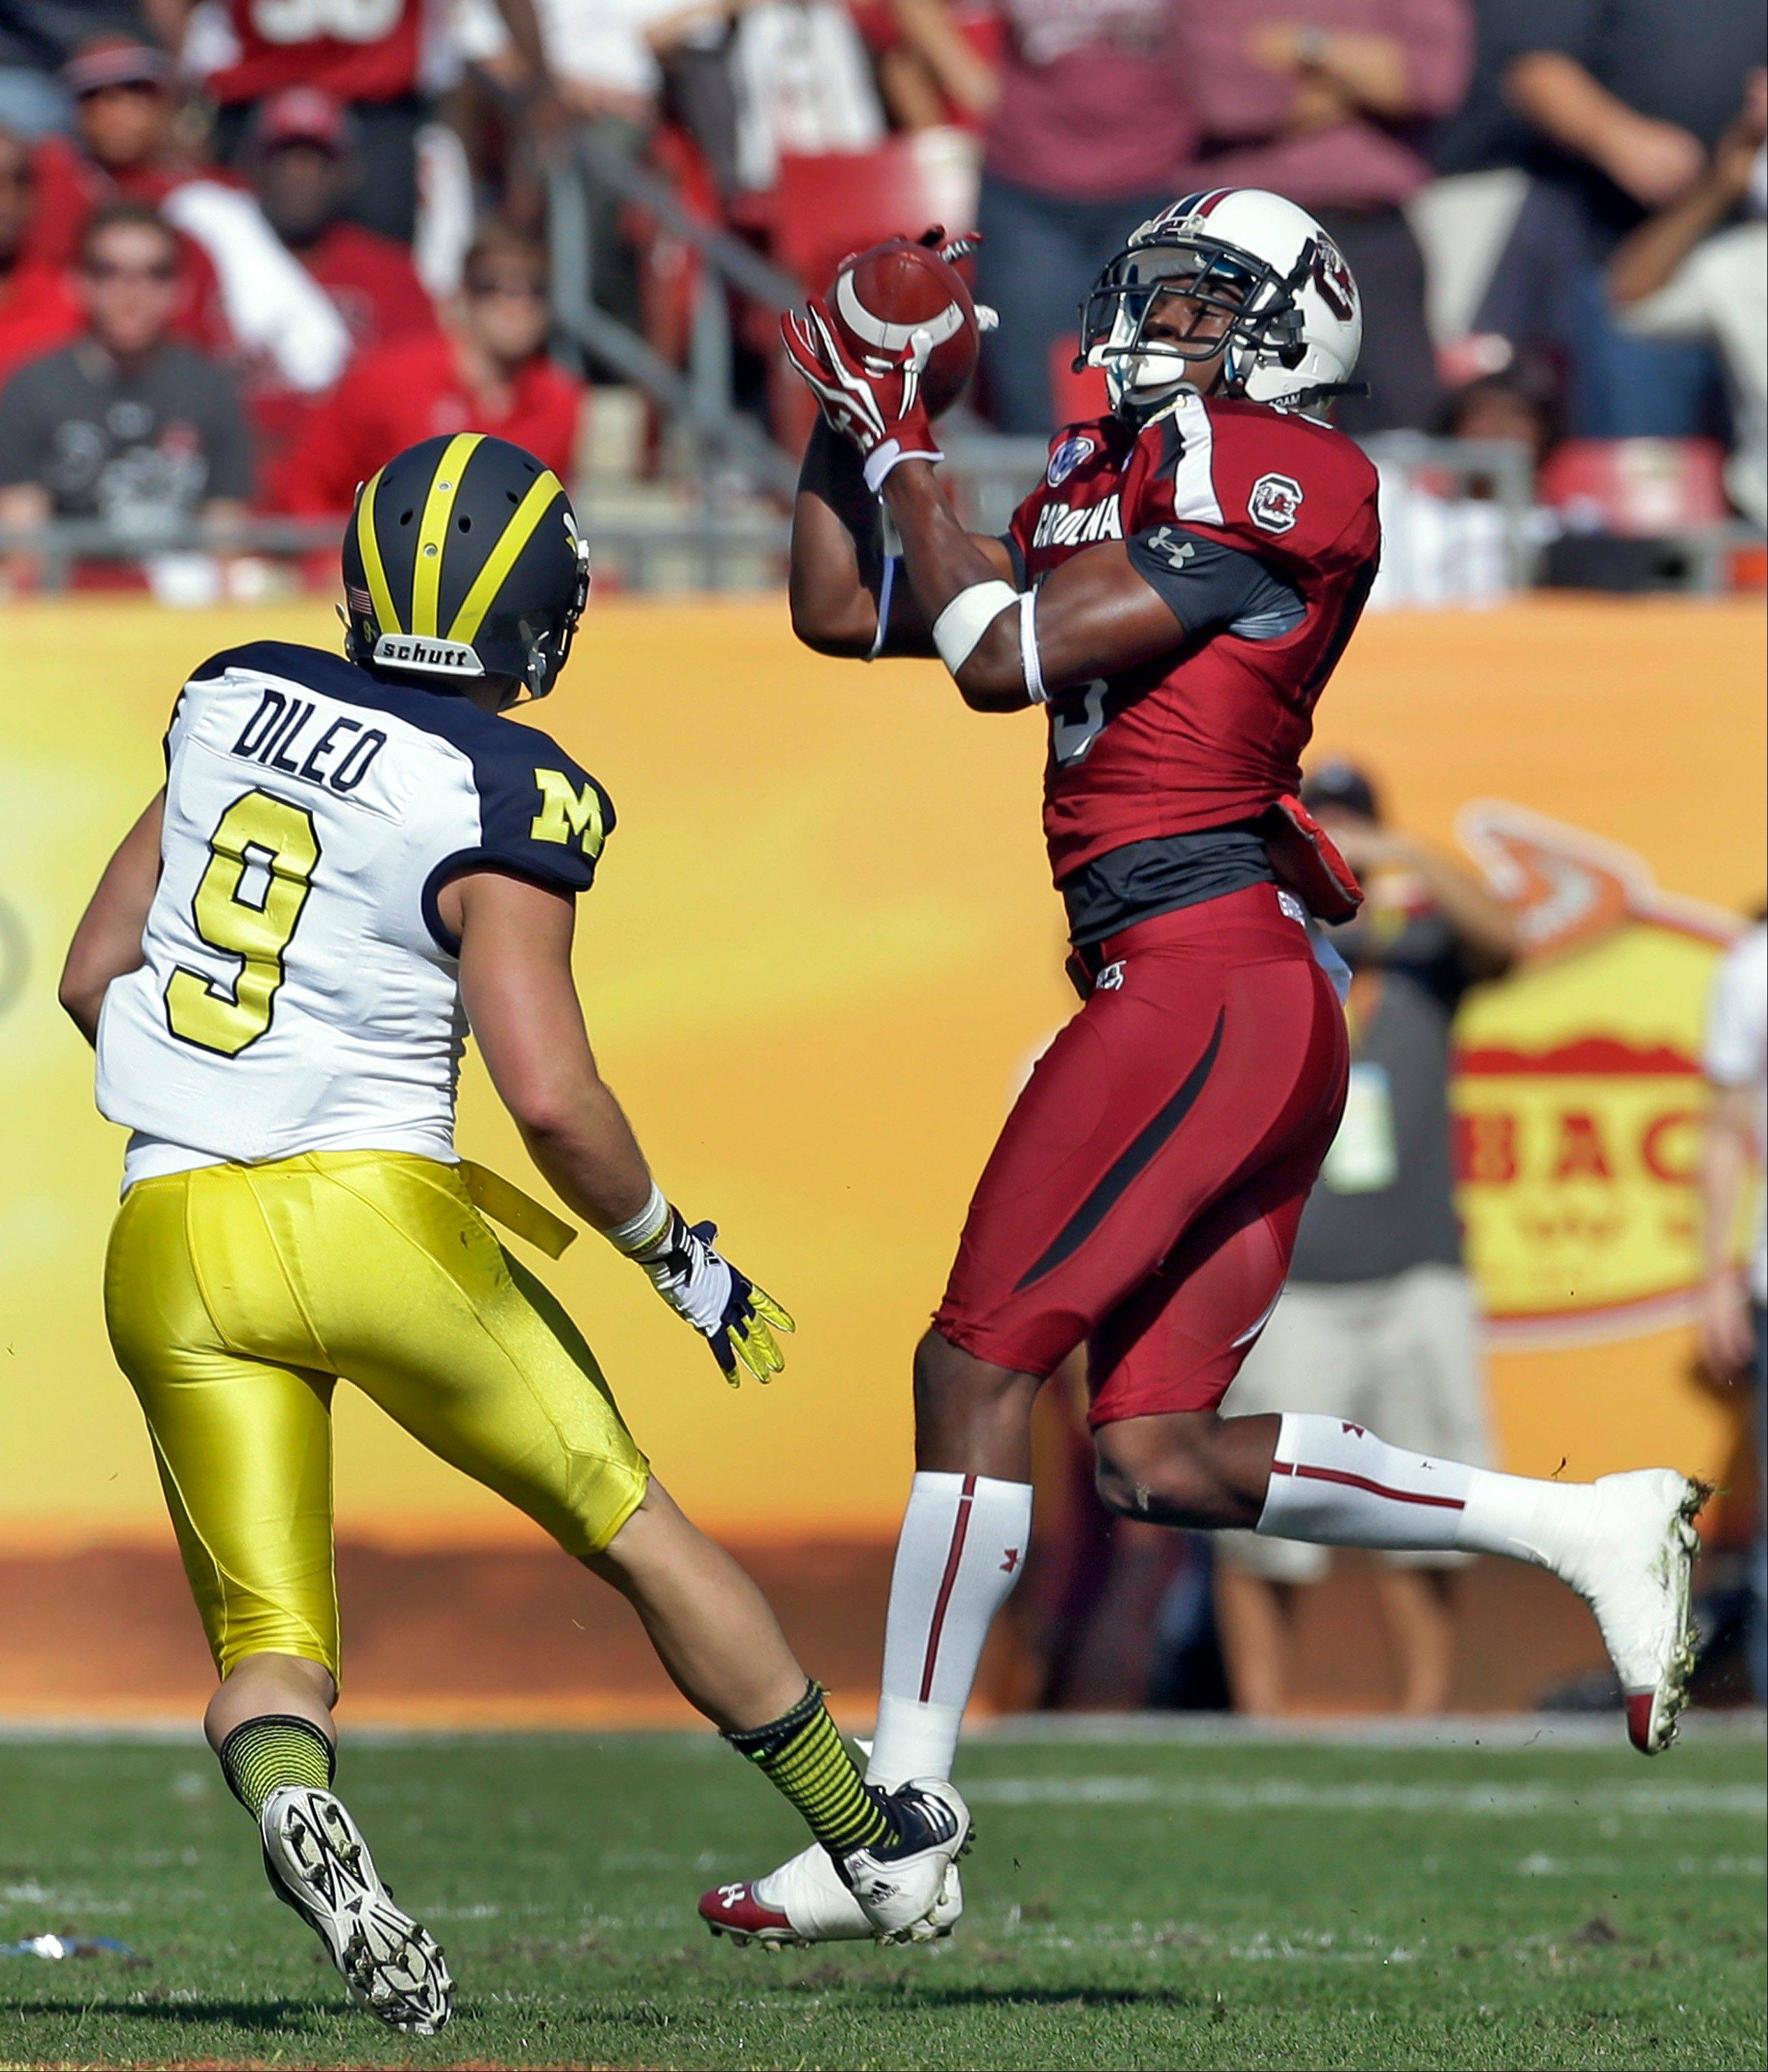 South Carolina cornerback Jimmy Legree (15) intercepts a pass intended for Michigan wide receiver Drew Dileo (9) during the first quarter of the Outback Bowl NCAA college football game, Tuesday, Jan. 1, 2013, in Tampa, Fla.